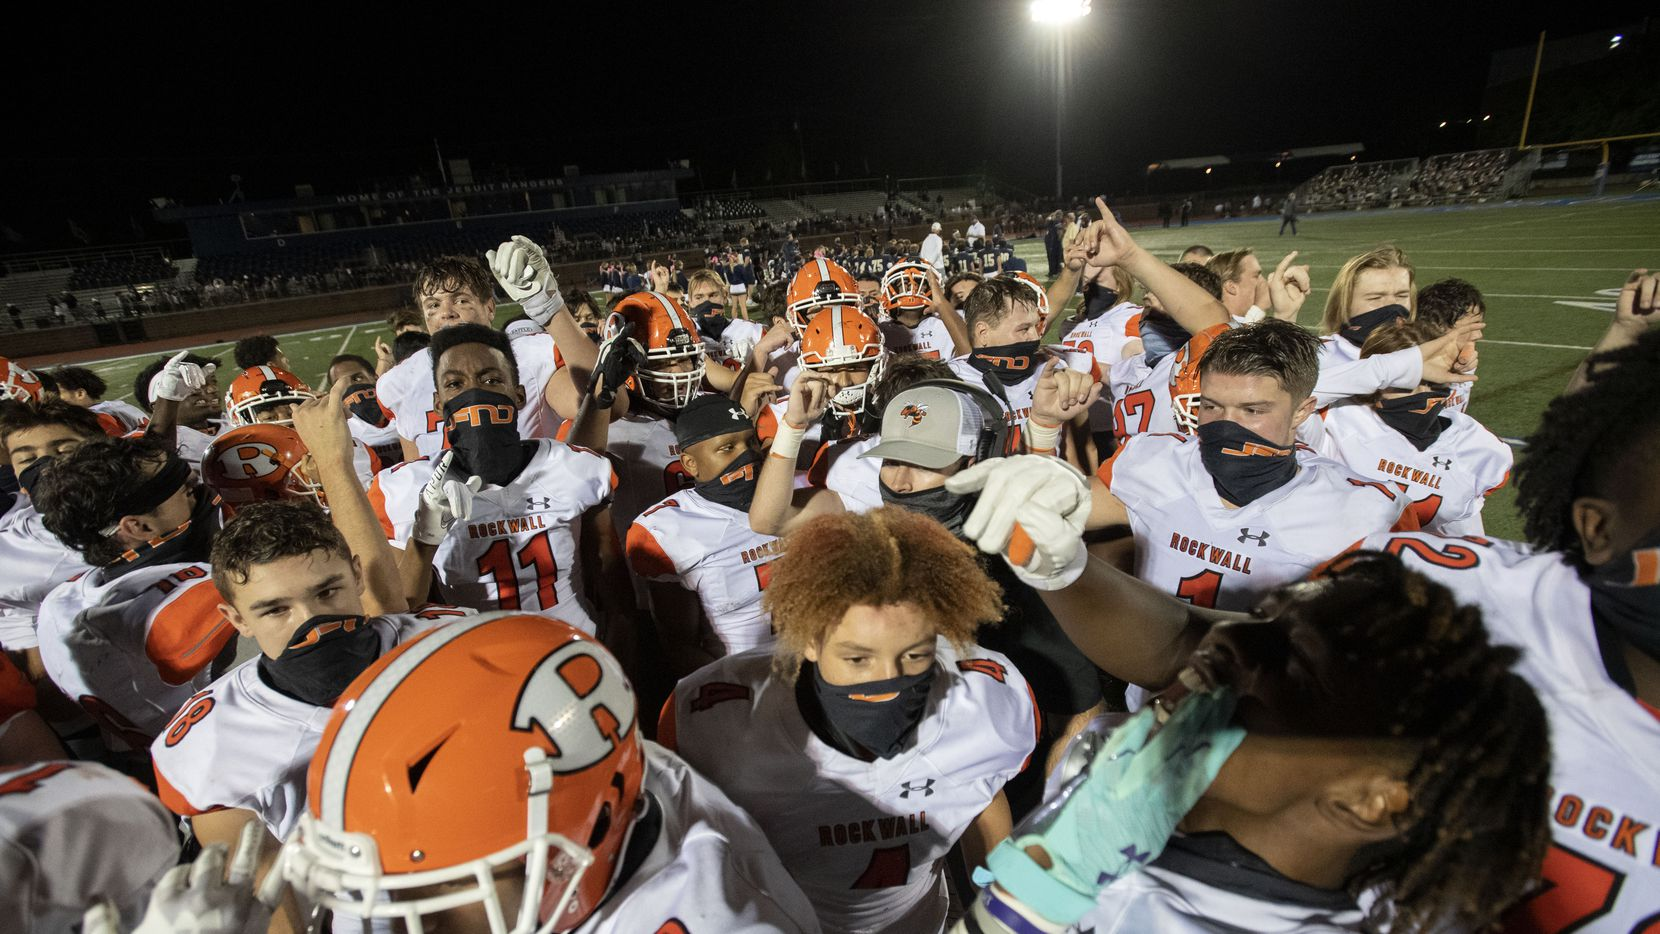 Rockwall players celebrate their 60-38 win over Jesuit in a high school football game on Friday, October 2, 2020 at Postell Stadium in Dallas.